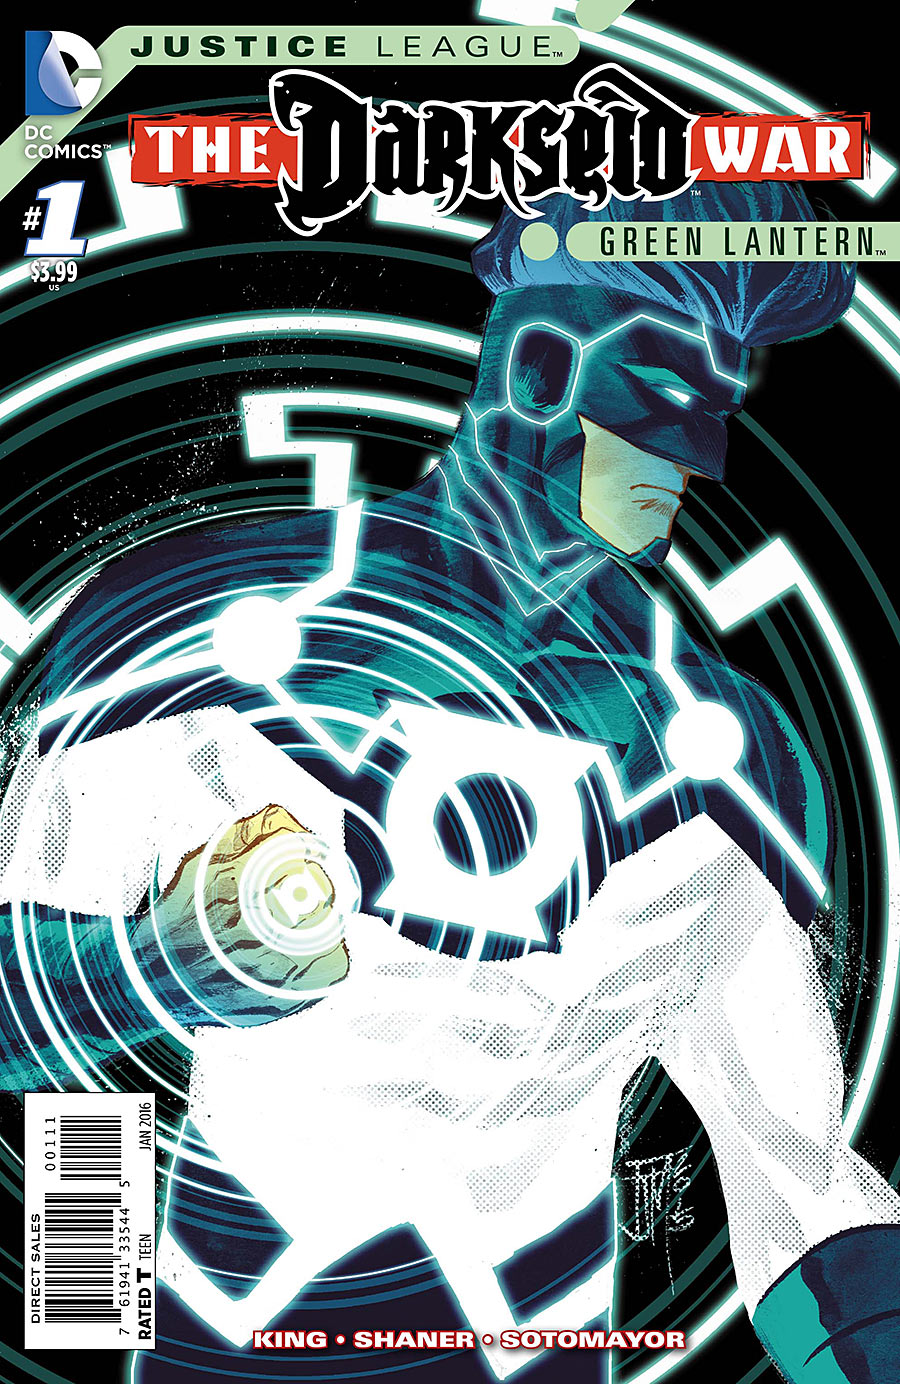 Justice League: The Darkseid War: Green Lantern Vol 1 1